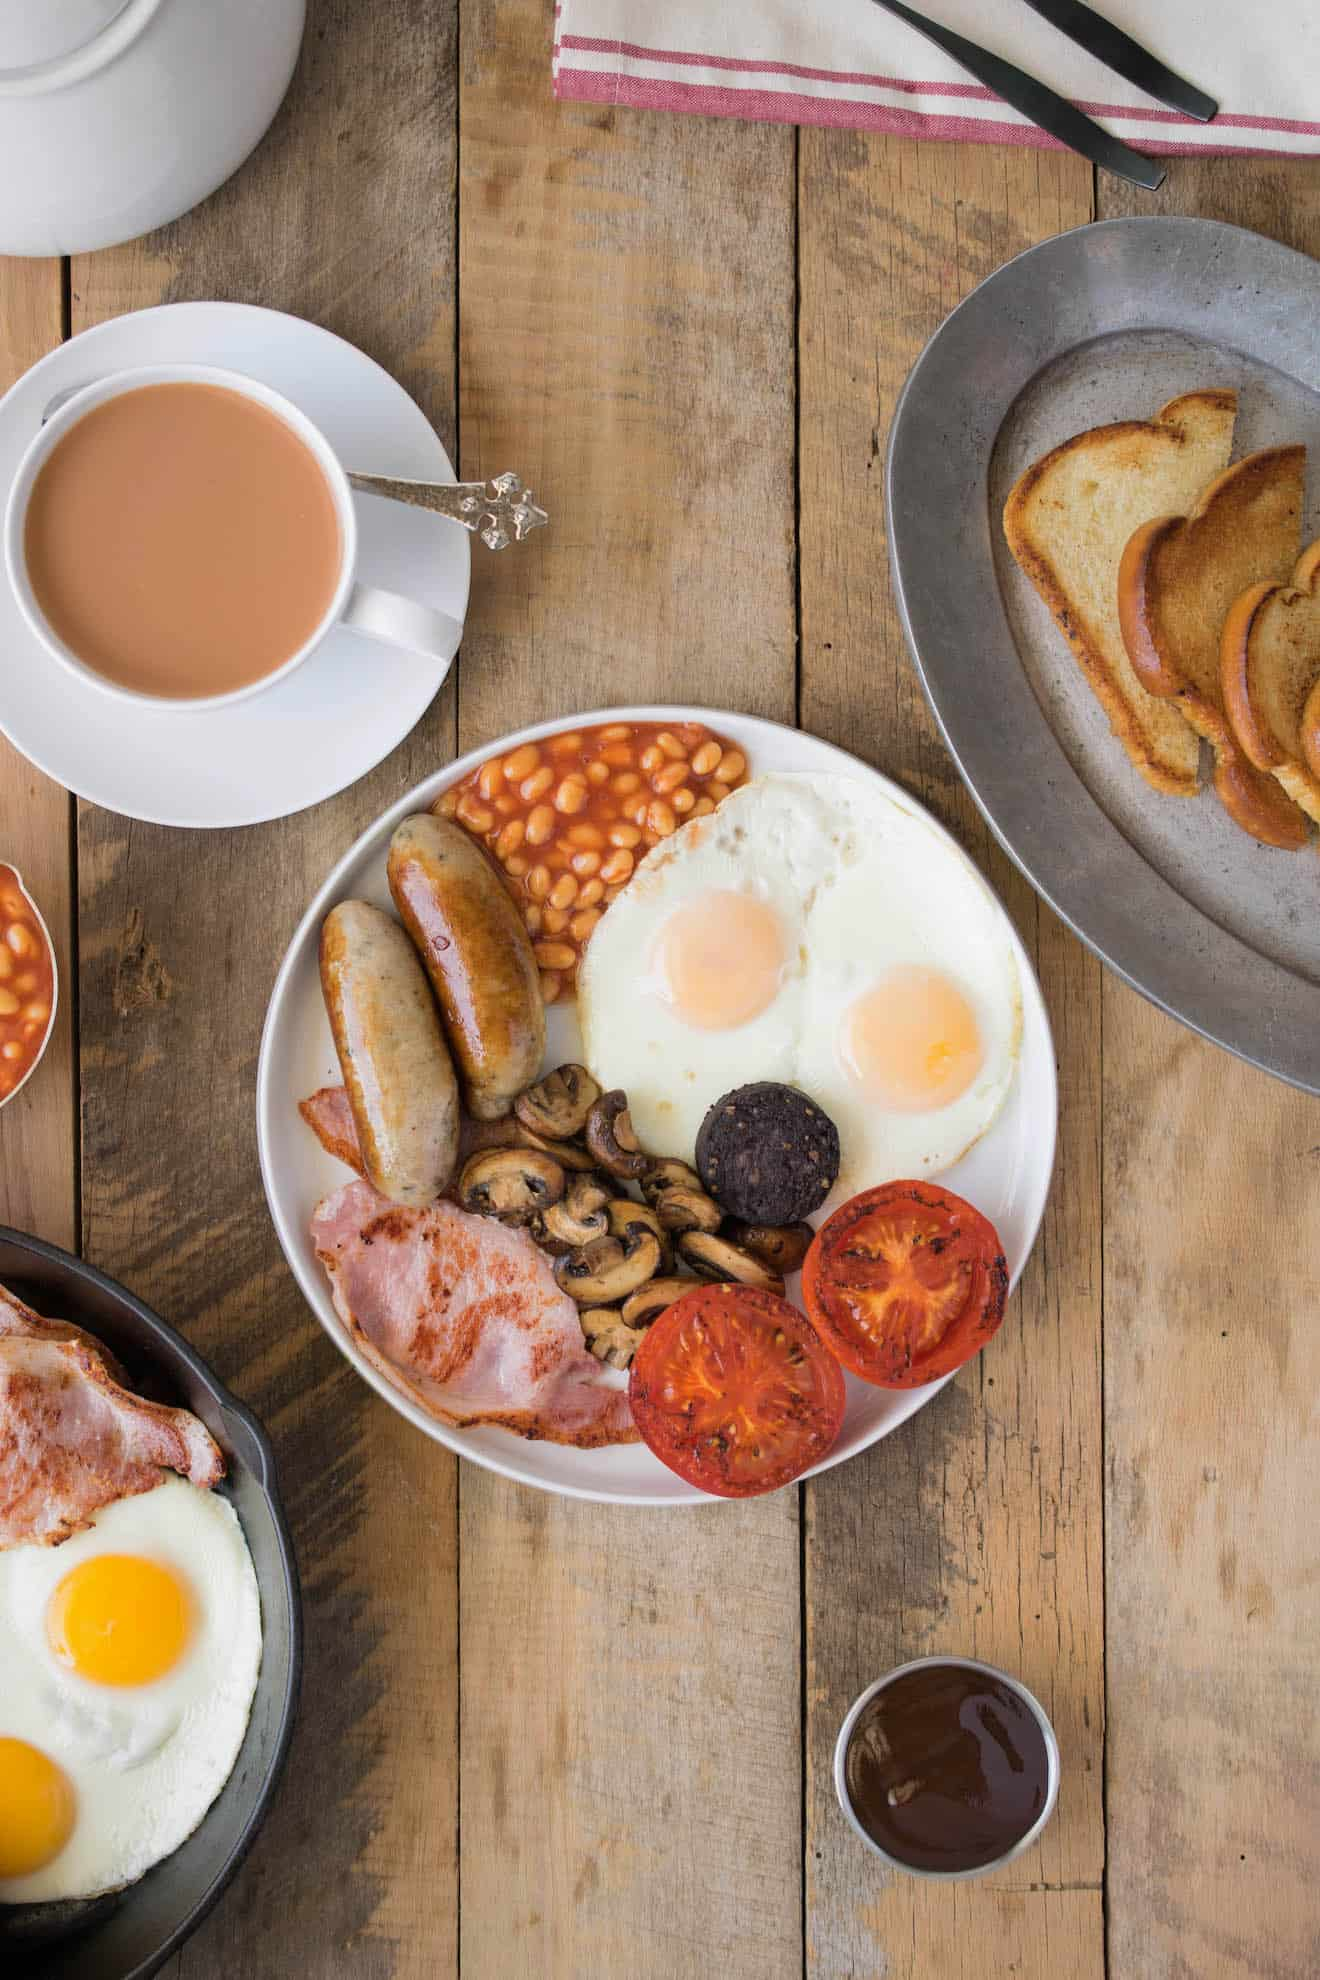 A Full English breakfast on a white plate with fried break and a cup of tea